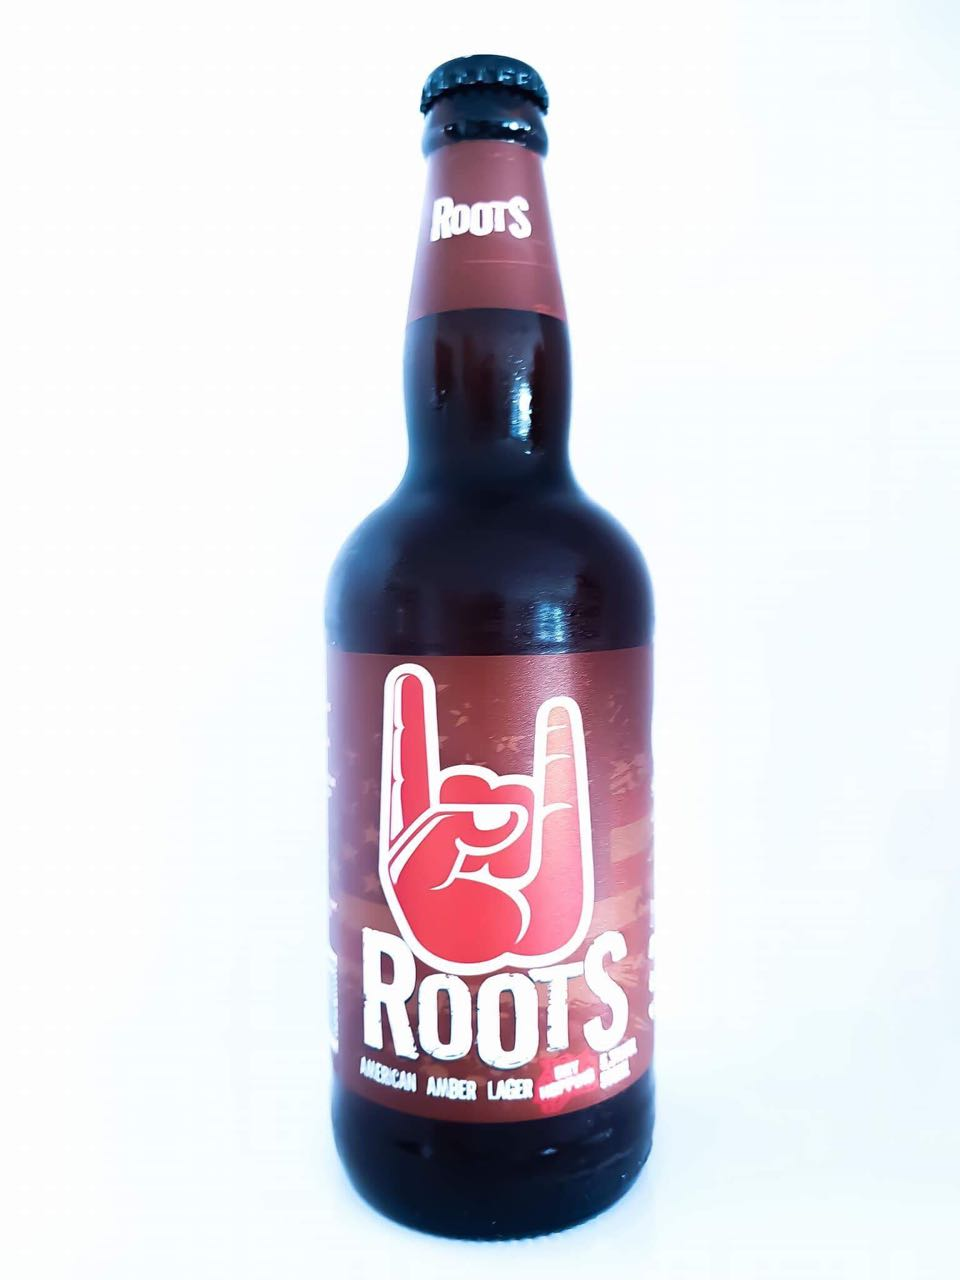 Roots American Amber Lager